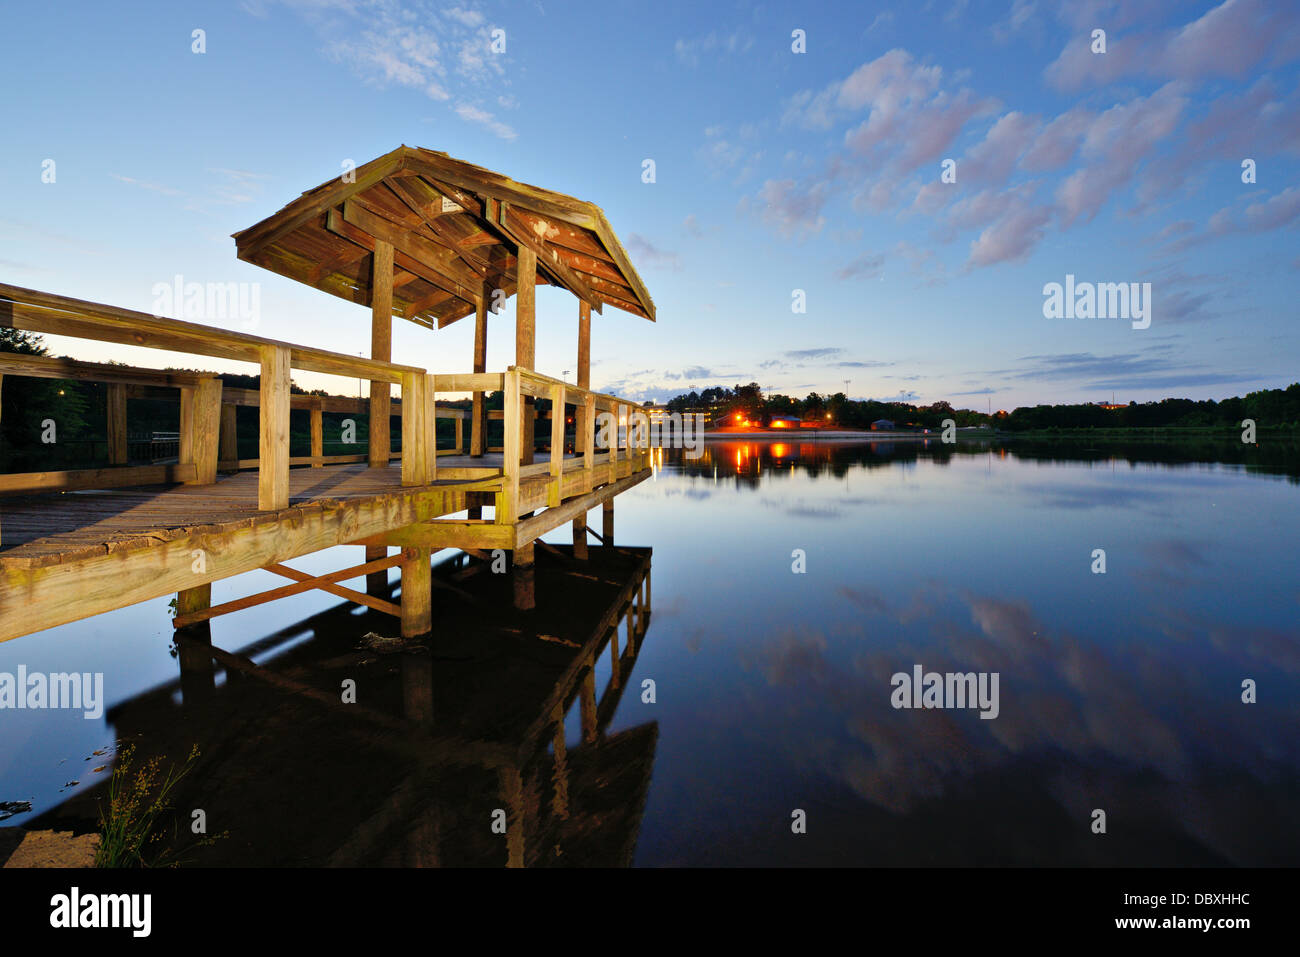 Country lake in north Georgia, USA. - Stock Image